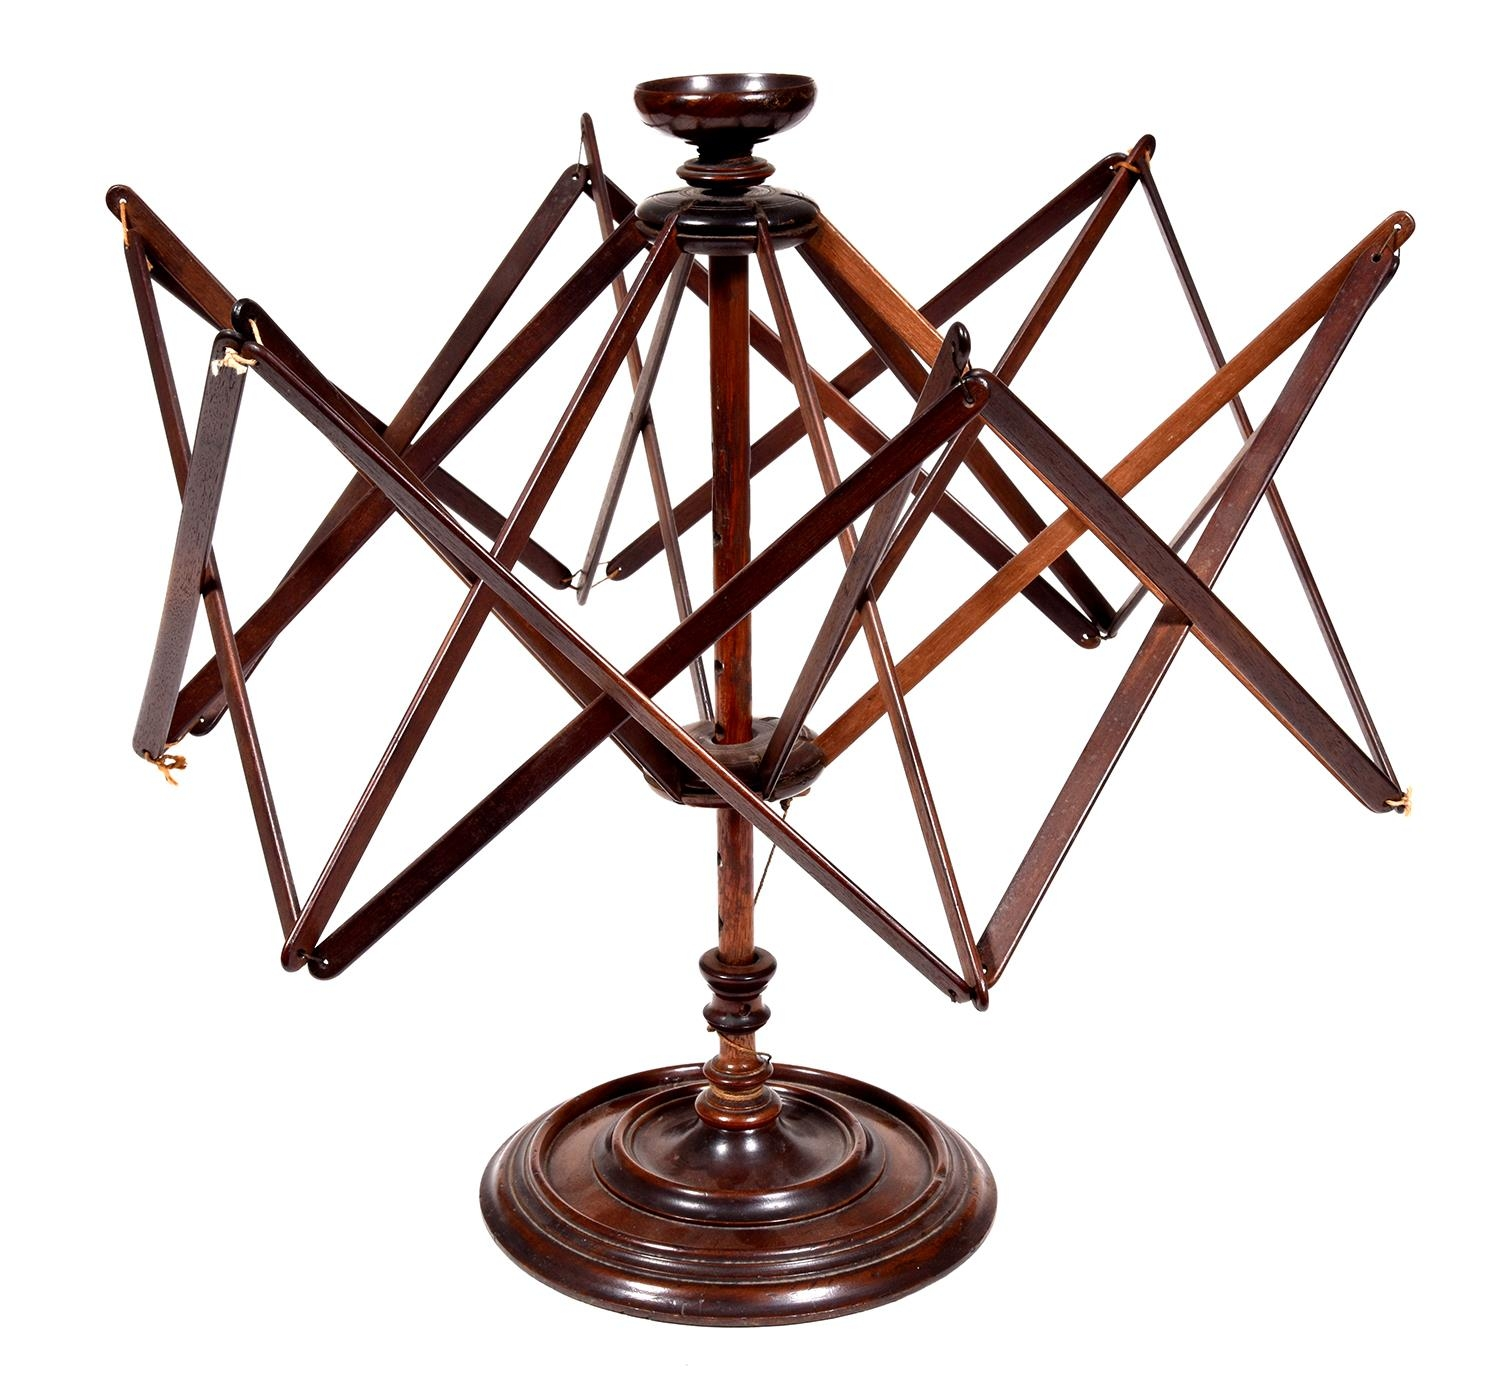 A George III mahogany swift, c1800,weighted with lead annulus, 47cm high Provenance: Heathcote Ball